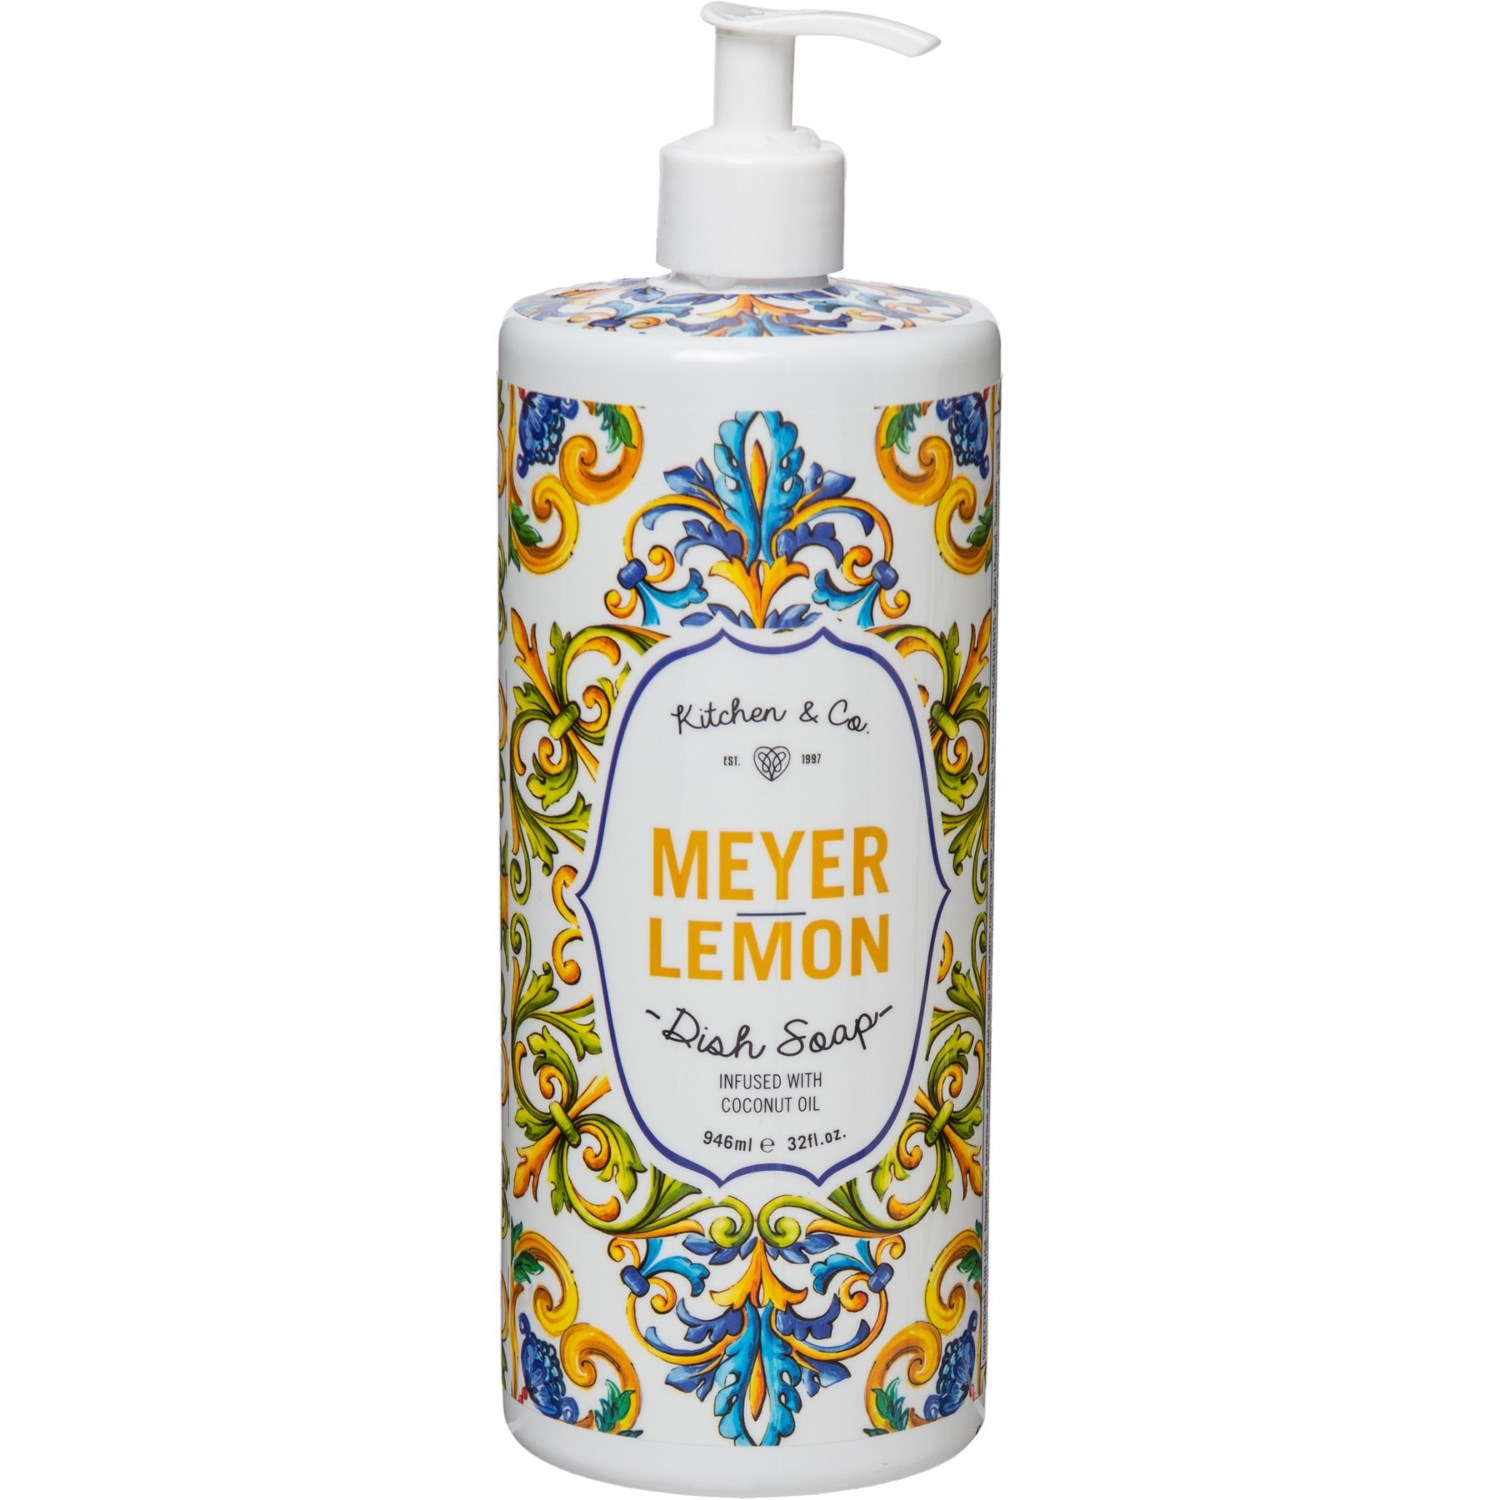 Kitchen And Co. Meyer Lemon Dish Soap - 32 oz.